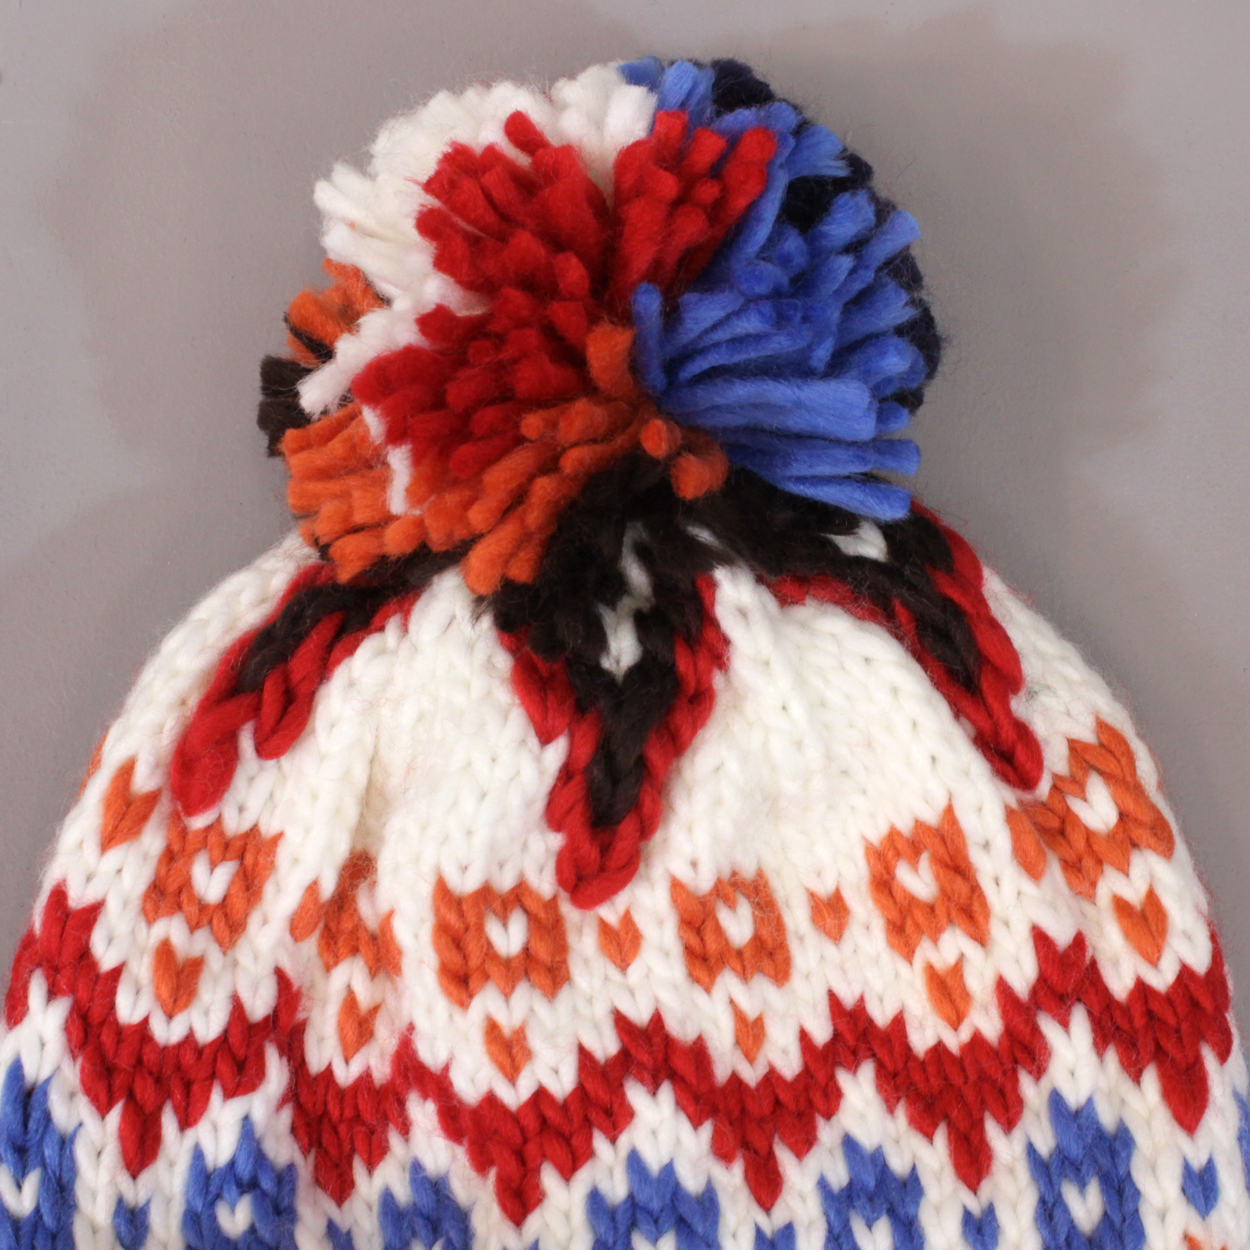 43171c97a9d Chunky knit with a good splash of colour for some bright winter warming  goodness. The Penfield Jarrow Beanie also has a traditional beanie for  style points